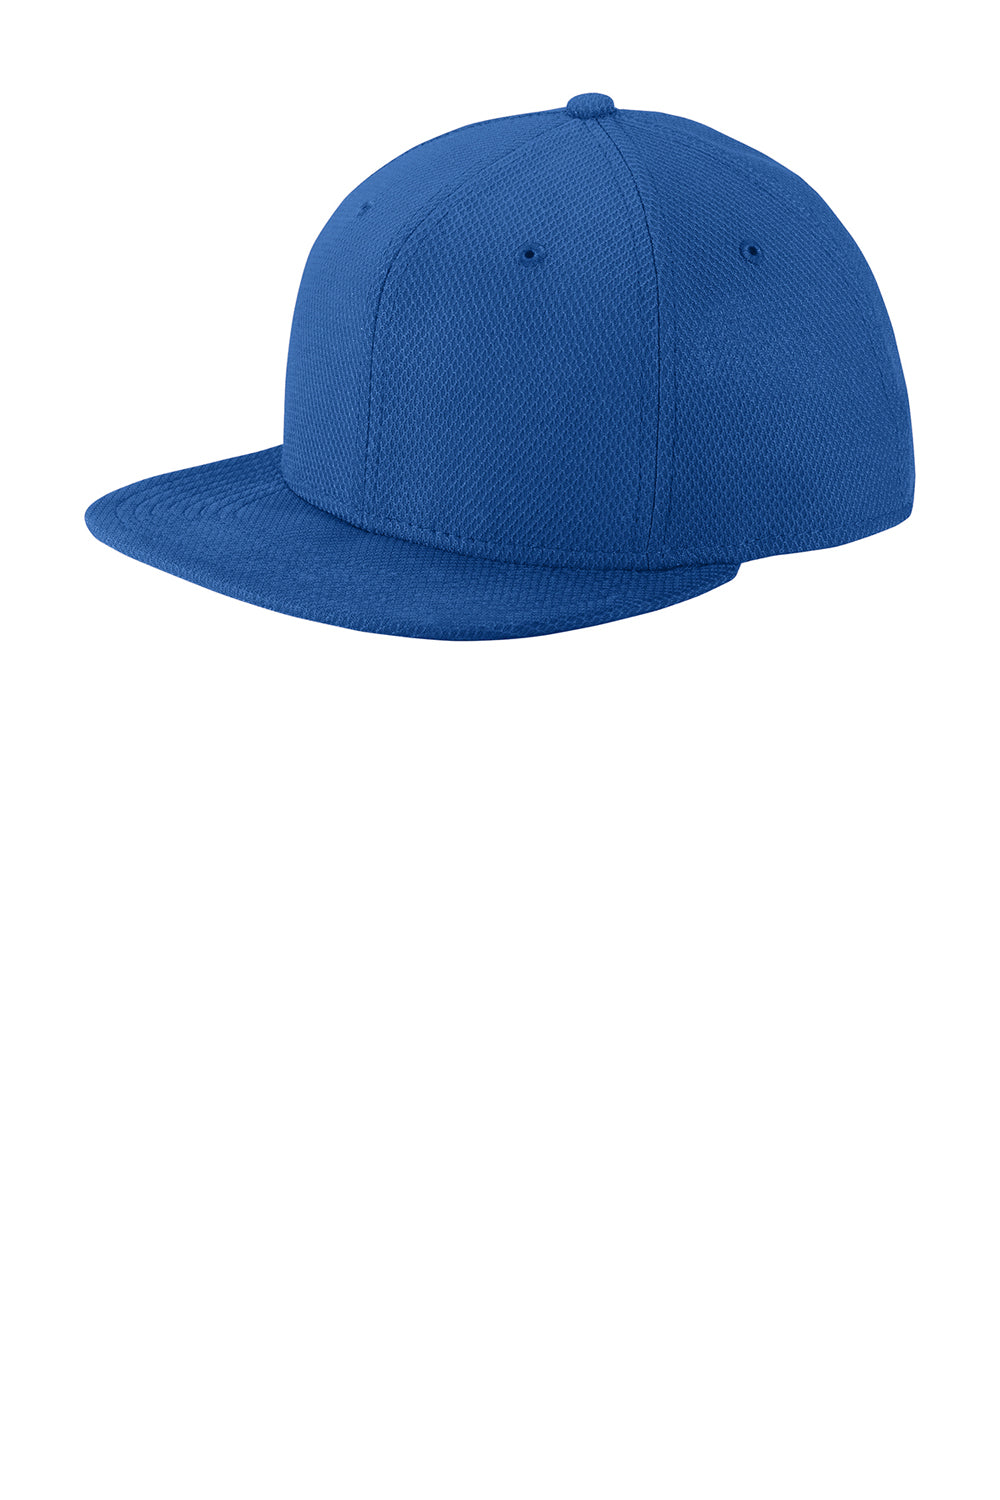 New Era NE404 Mens Moisture Wicking Adjustable Hat Royal Blue Front